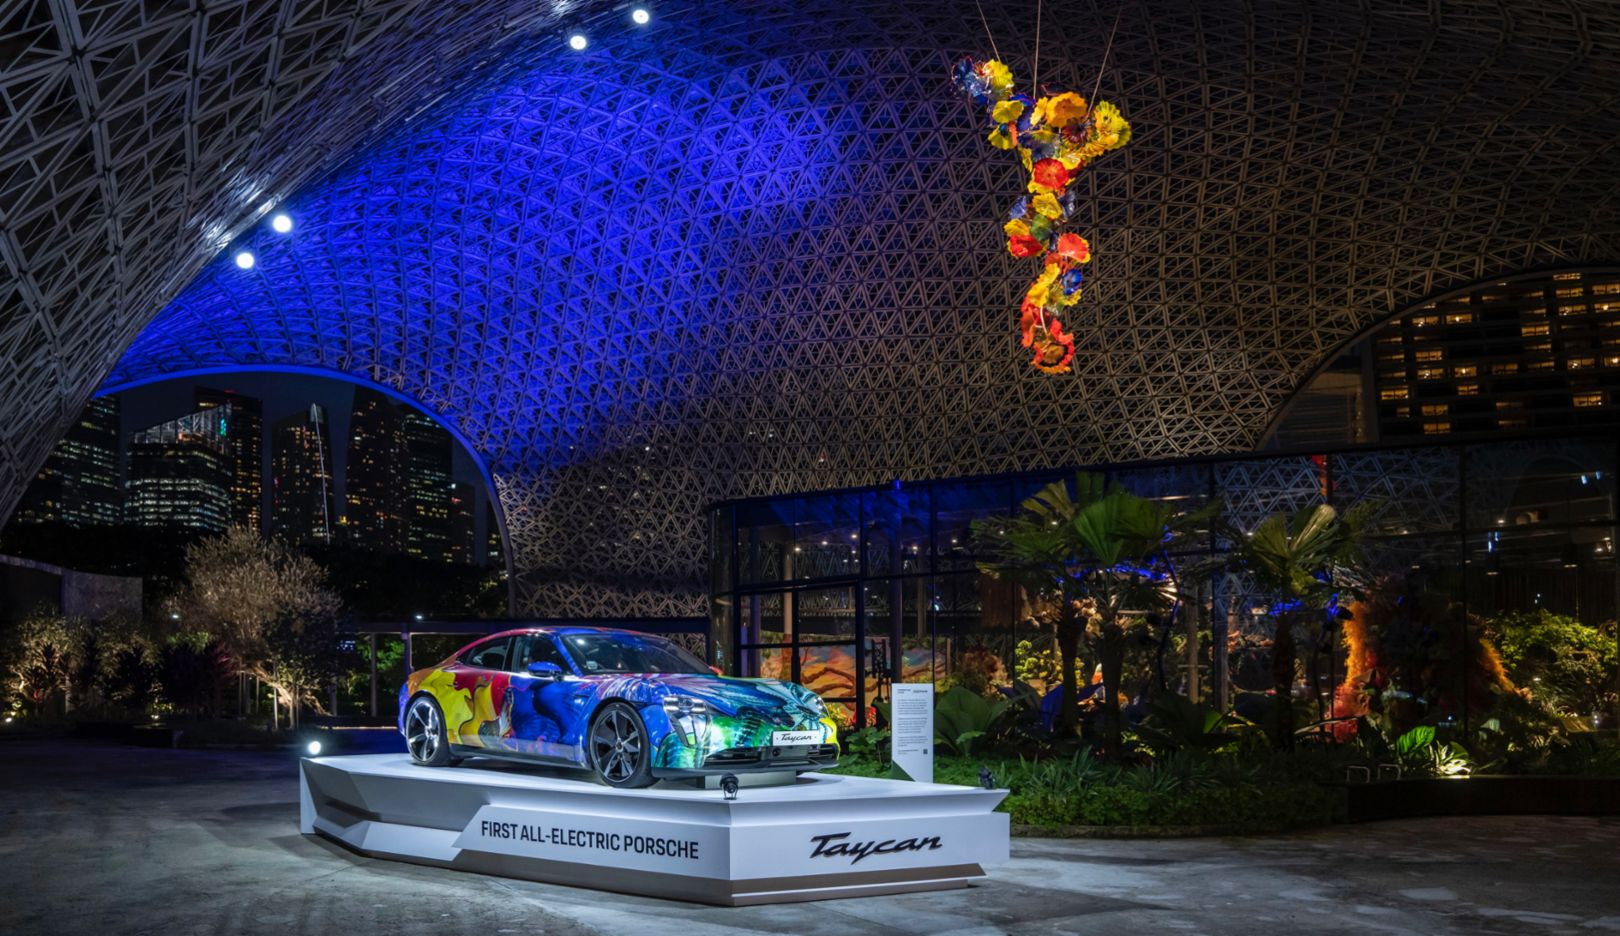 Floral Porsche Taycan in the Gardens by the Bay - Image 7